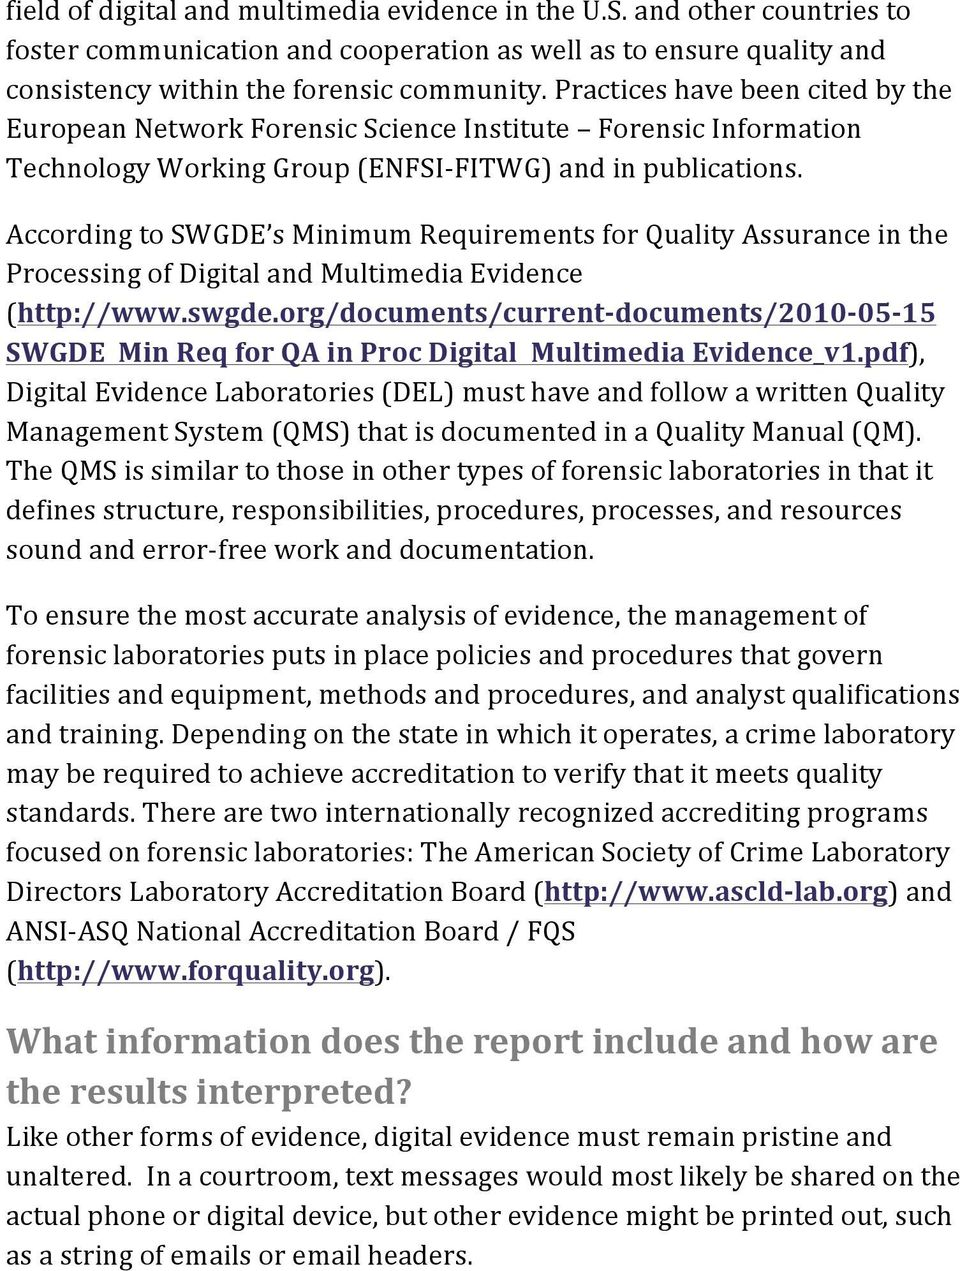 According to SWGDE s Minimum Requirements for Quality Assurance in the Processing of Digital and Multimedia Evidence (http://www.swgde.